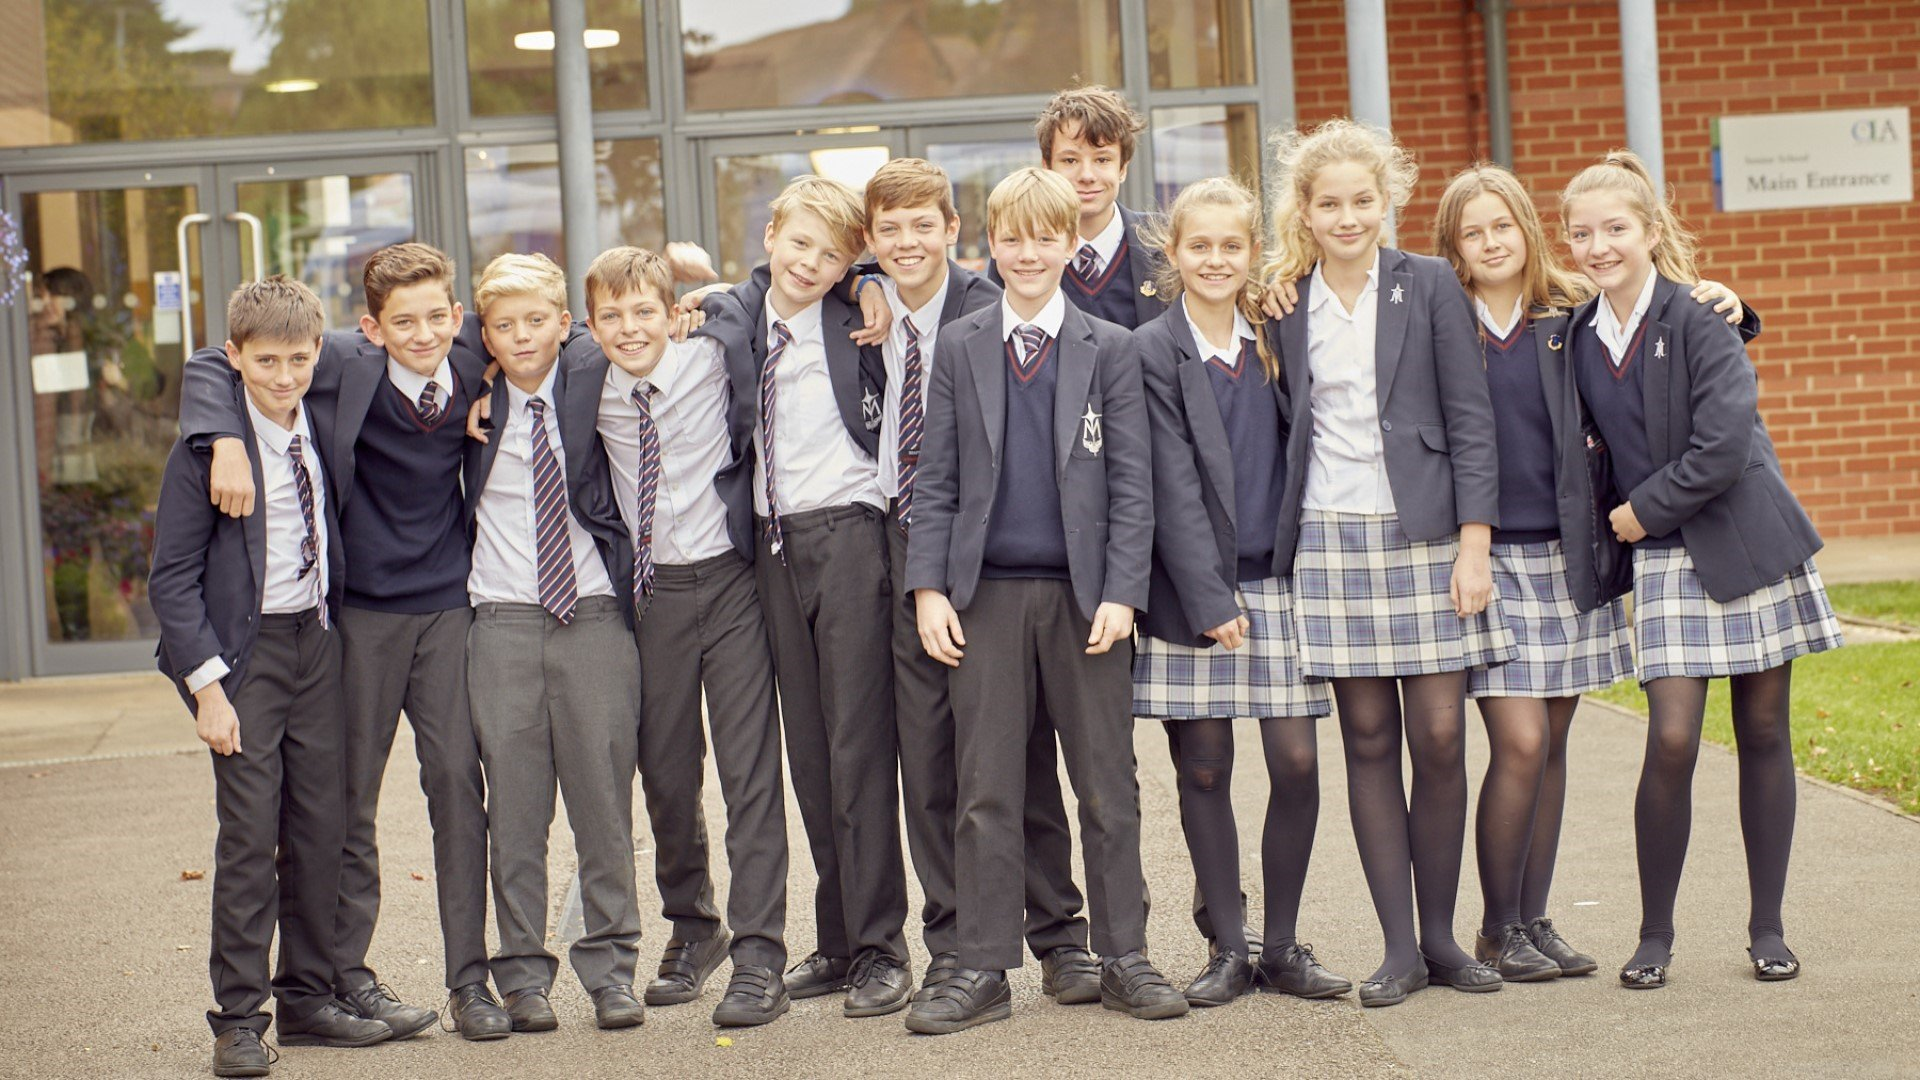 Our Lady's Abingdon School Open Days